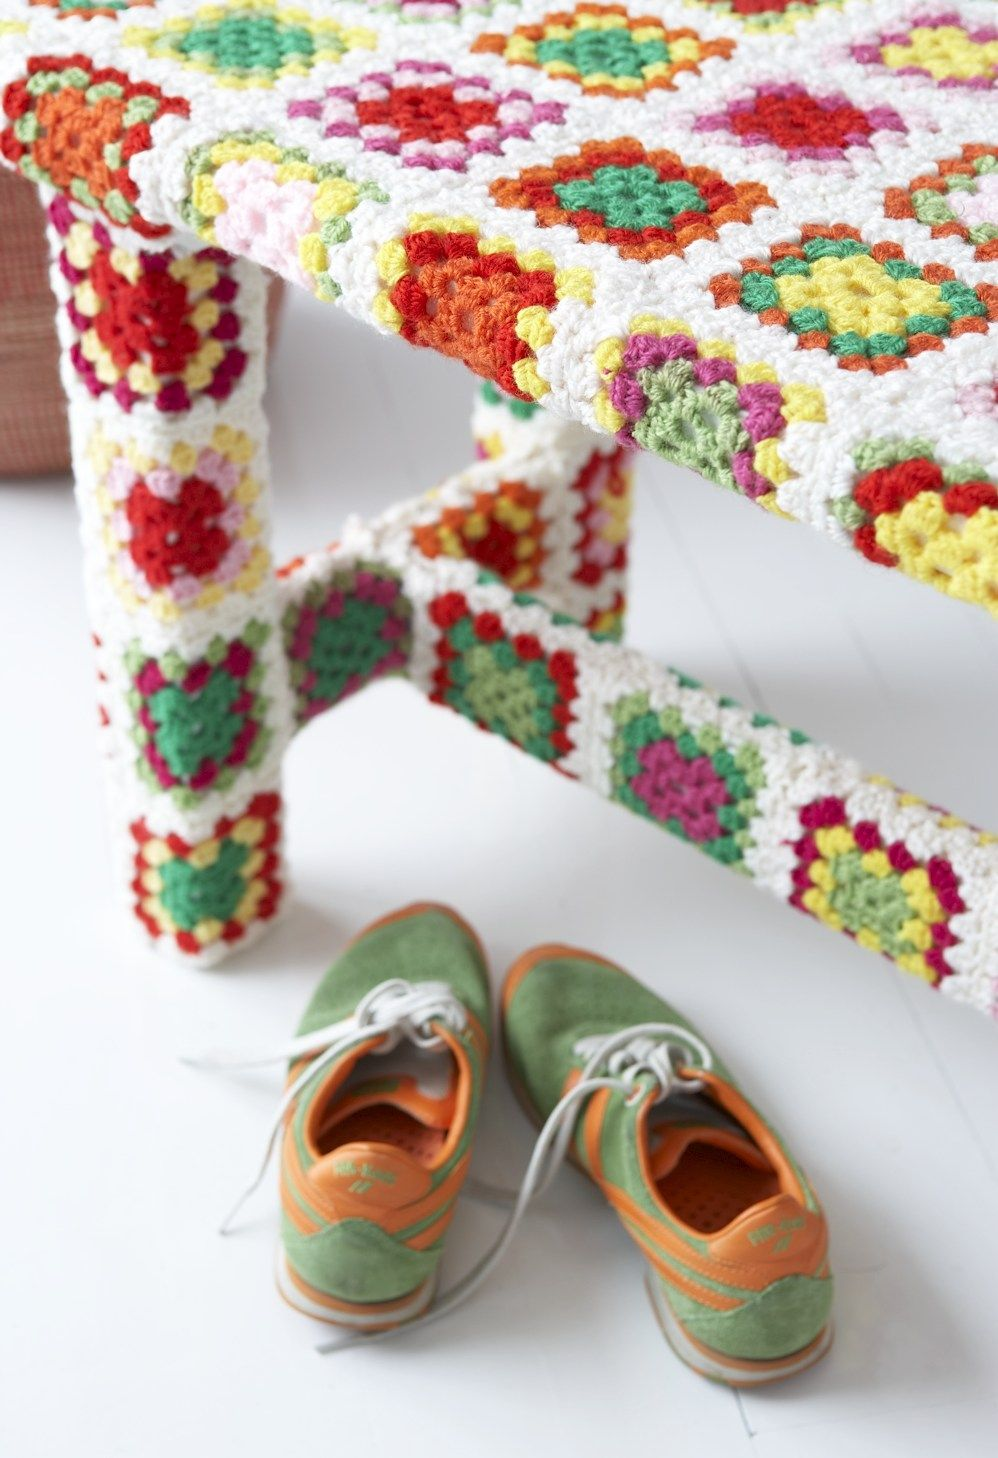 Crochet-covered furniture. Huh. Interesting idea but not a big fan of granny squares. I'd have to do something different.